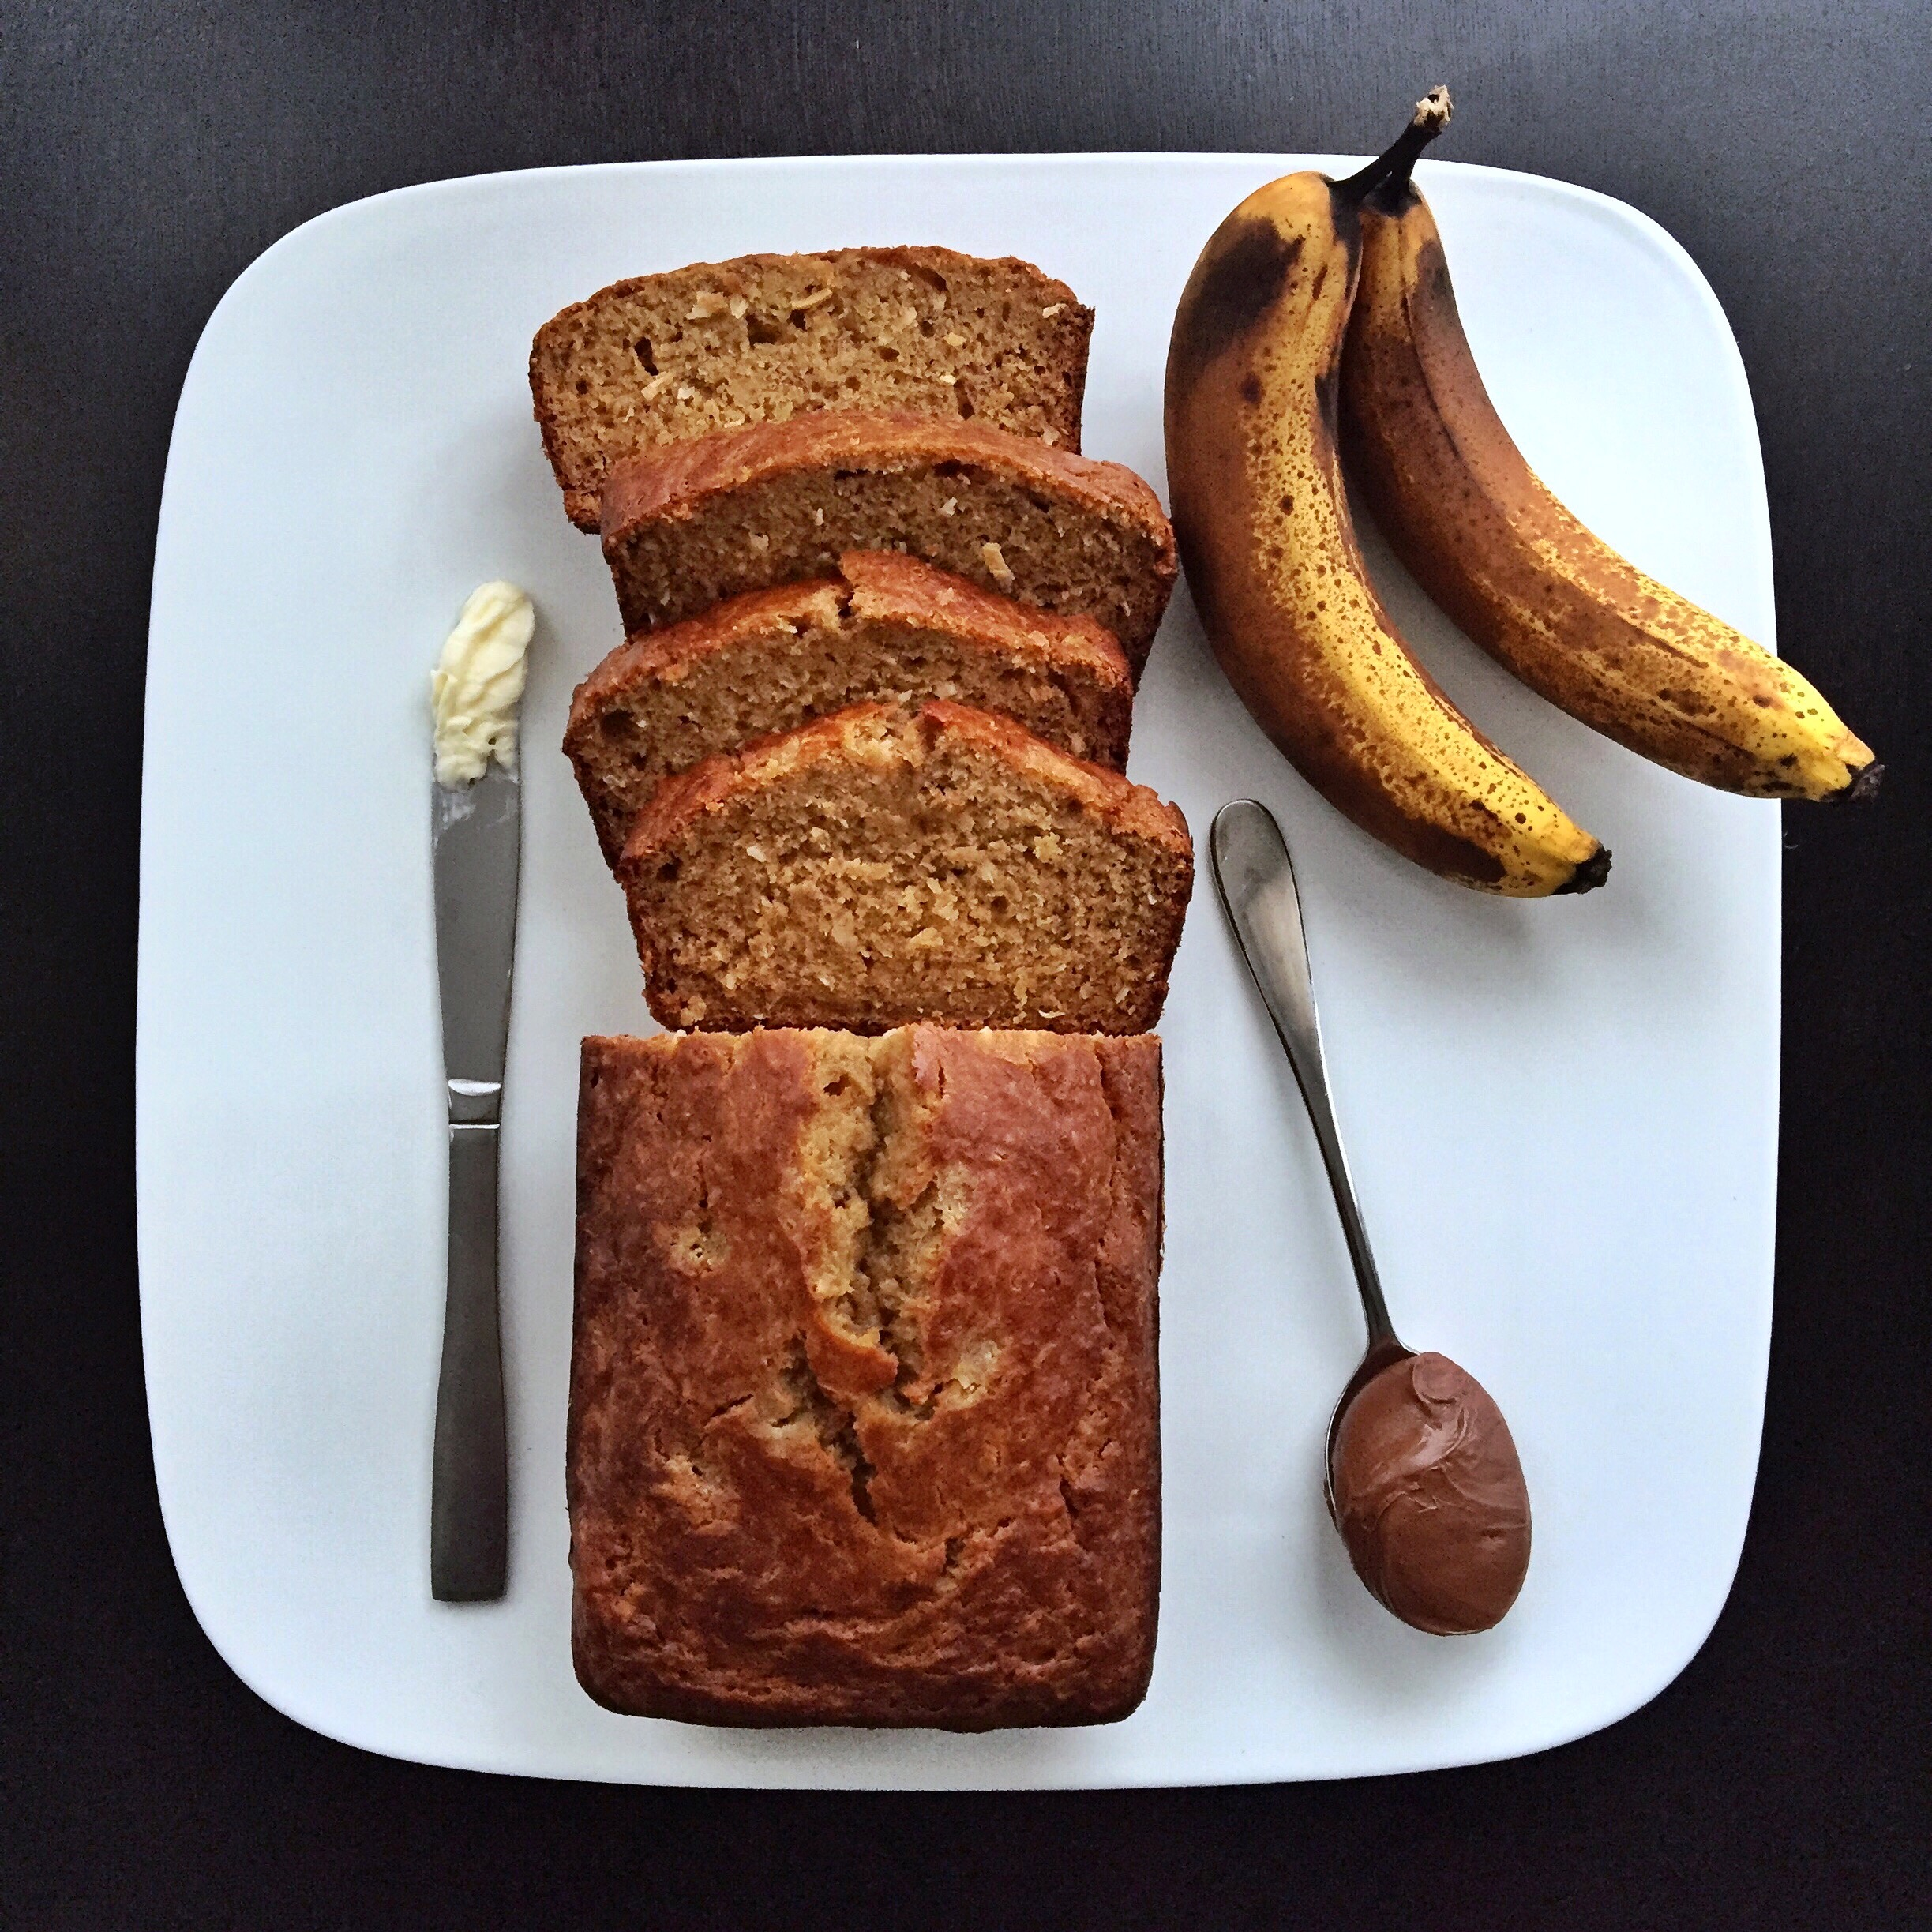 Snowstorm Sea Salt Caramel Banana Bread Recipe